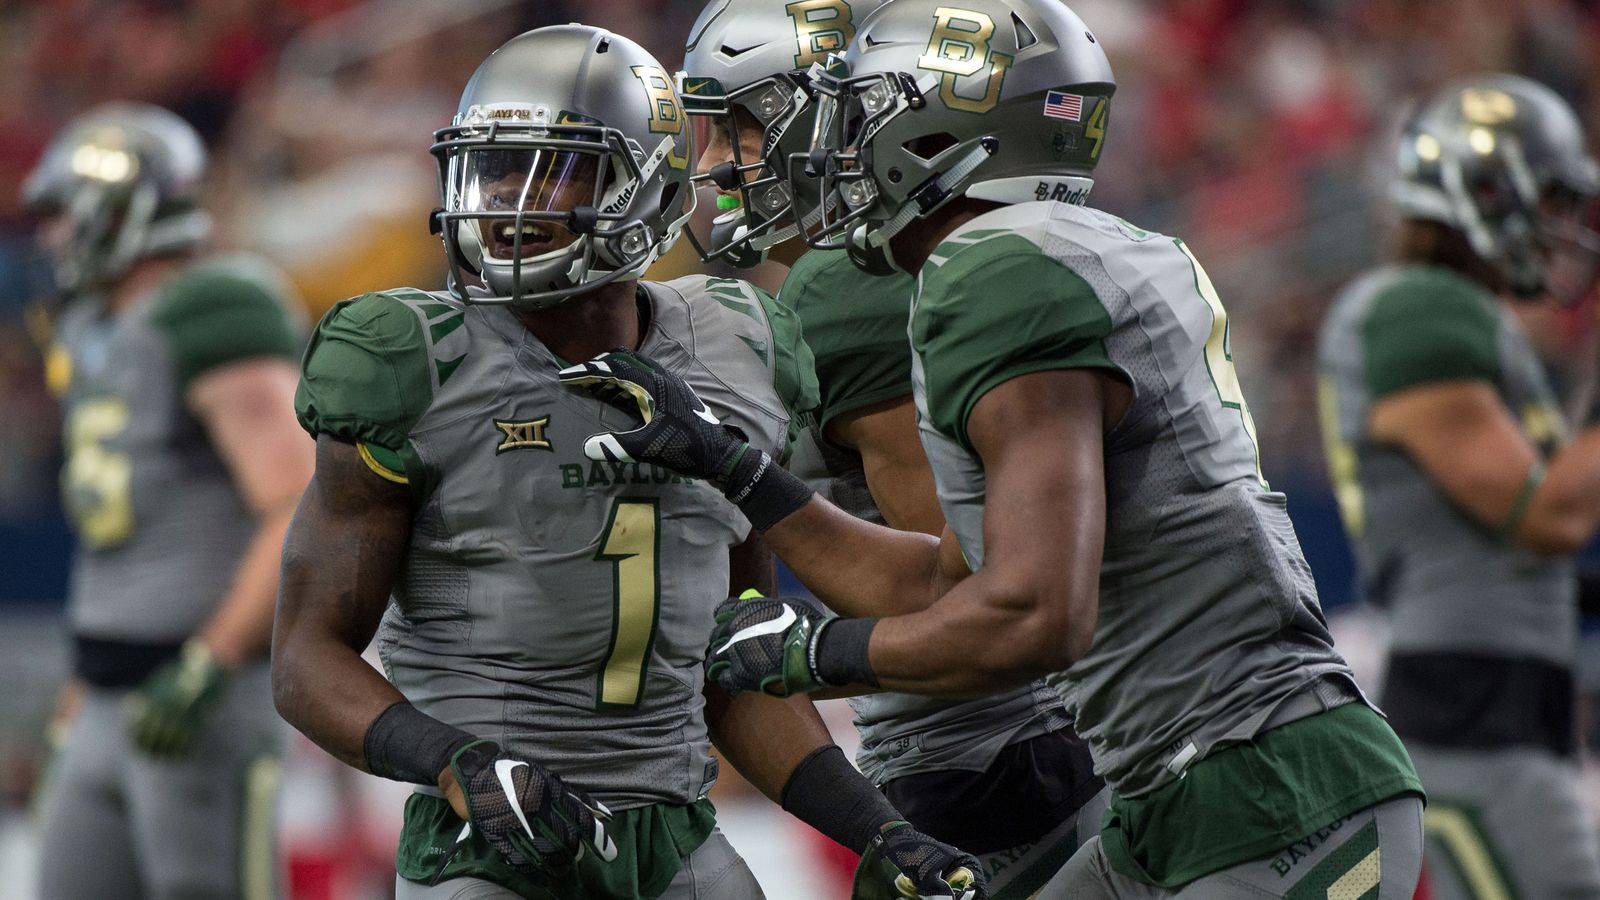 The 2013 Baylor Bears football team represented Baylor University in the 2013 NCAA Division I FBS football season The Bears coached by Art Briles were playing